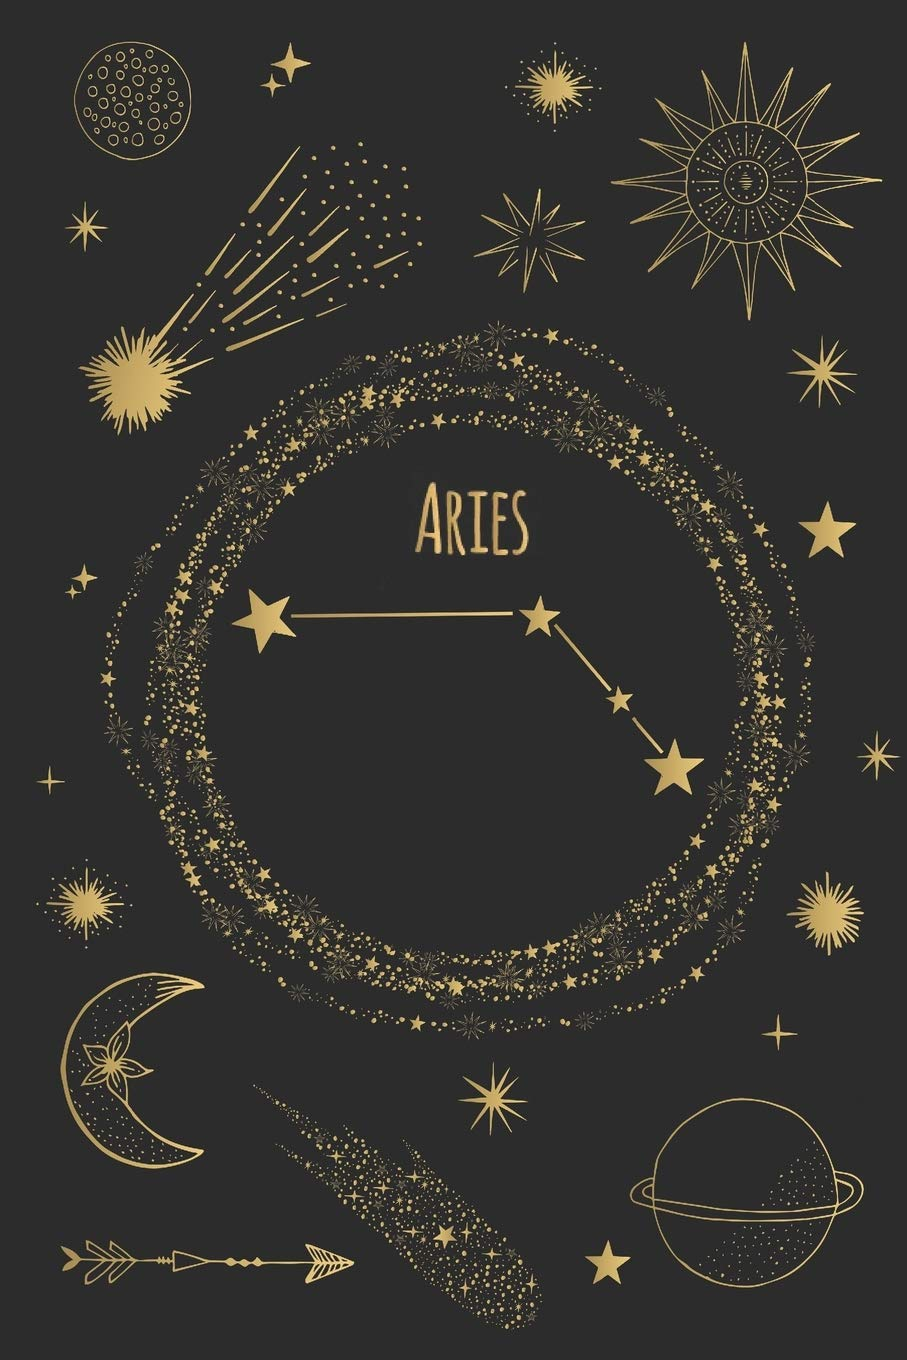 Aries: Horoscope Journal - Zodiac Notebook - A Great Aries Gift: Press,  Lemon Thursday: 9781687869968: Amazon.com: Books